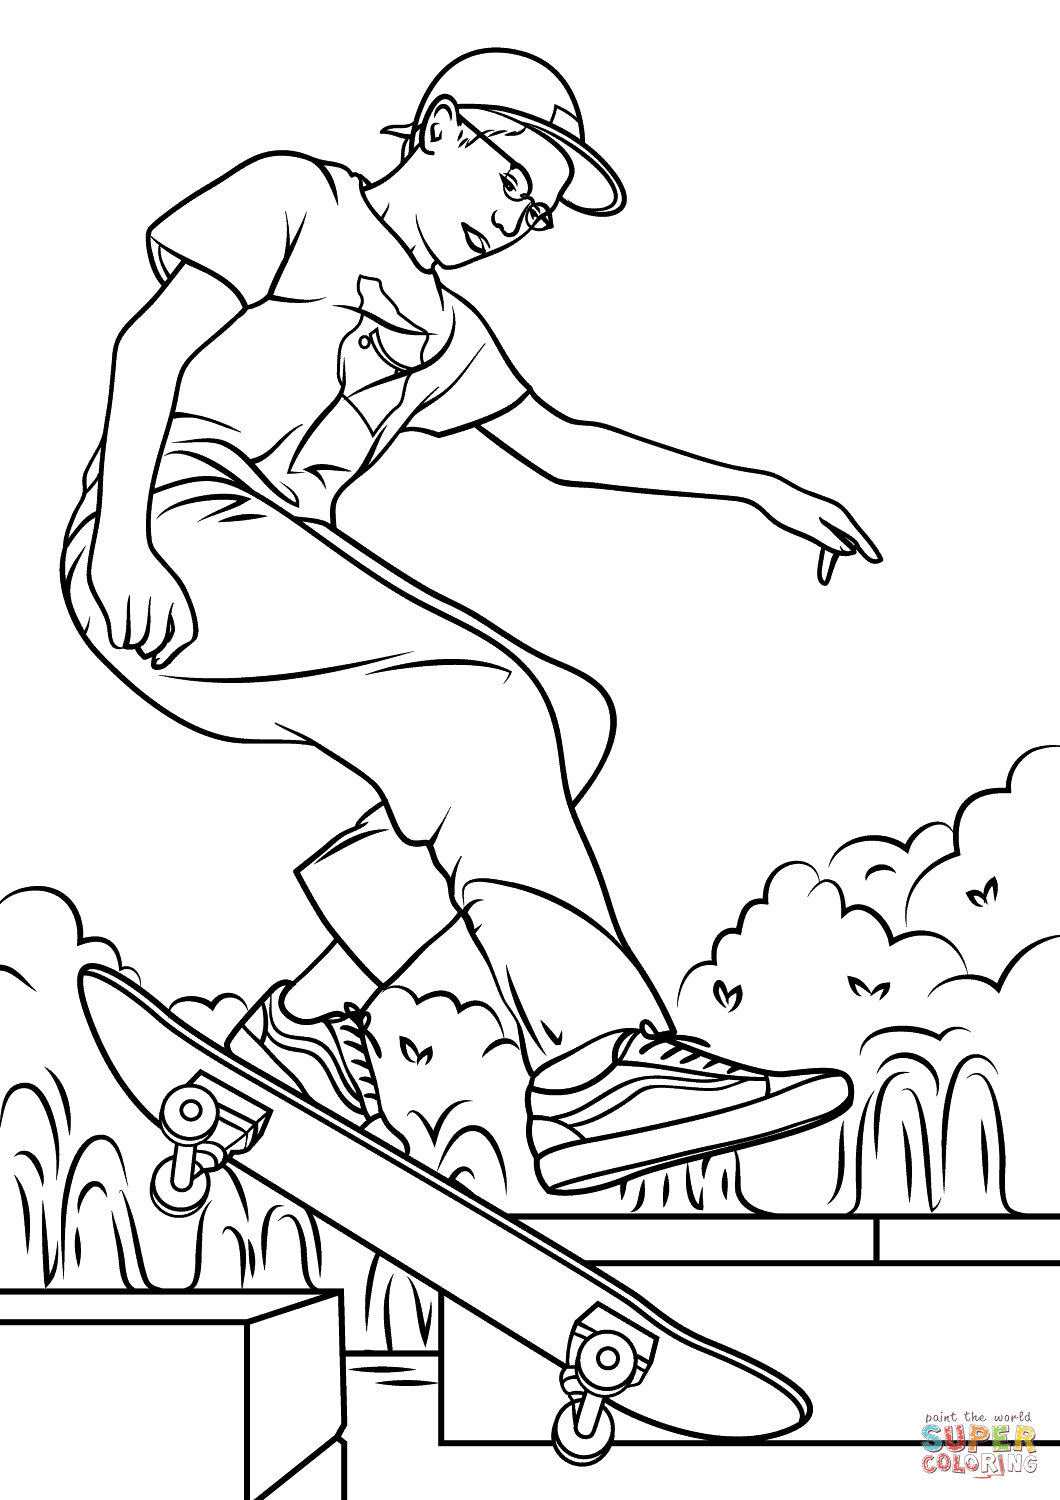 skateboard colouring pages skateboard coloring download skateboard coloring for free skateboard pages colouring